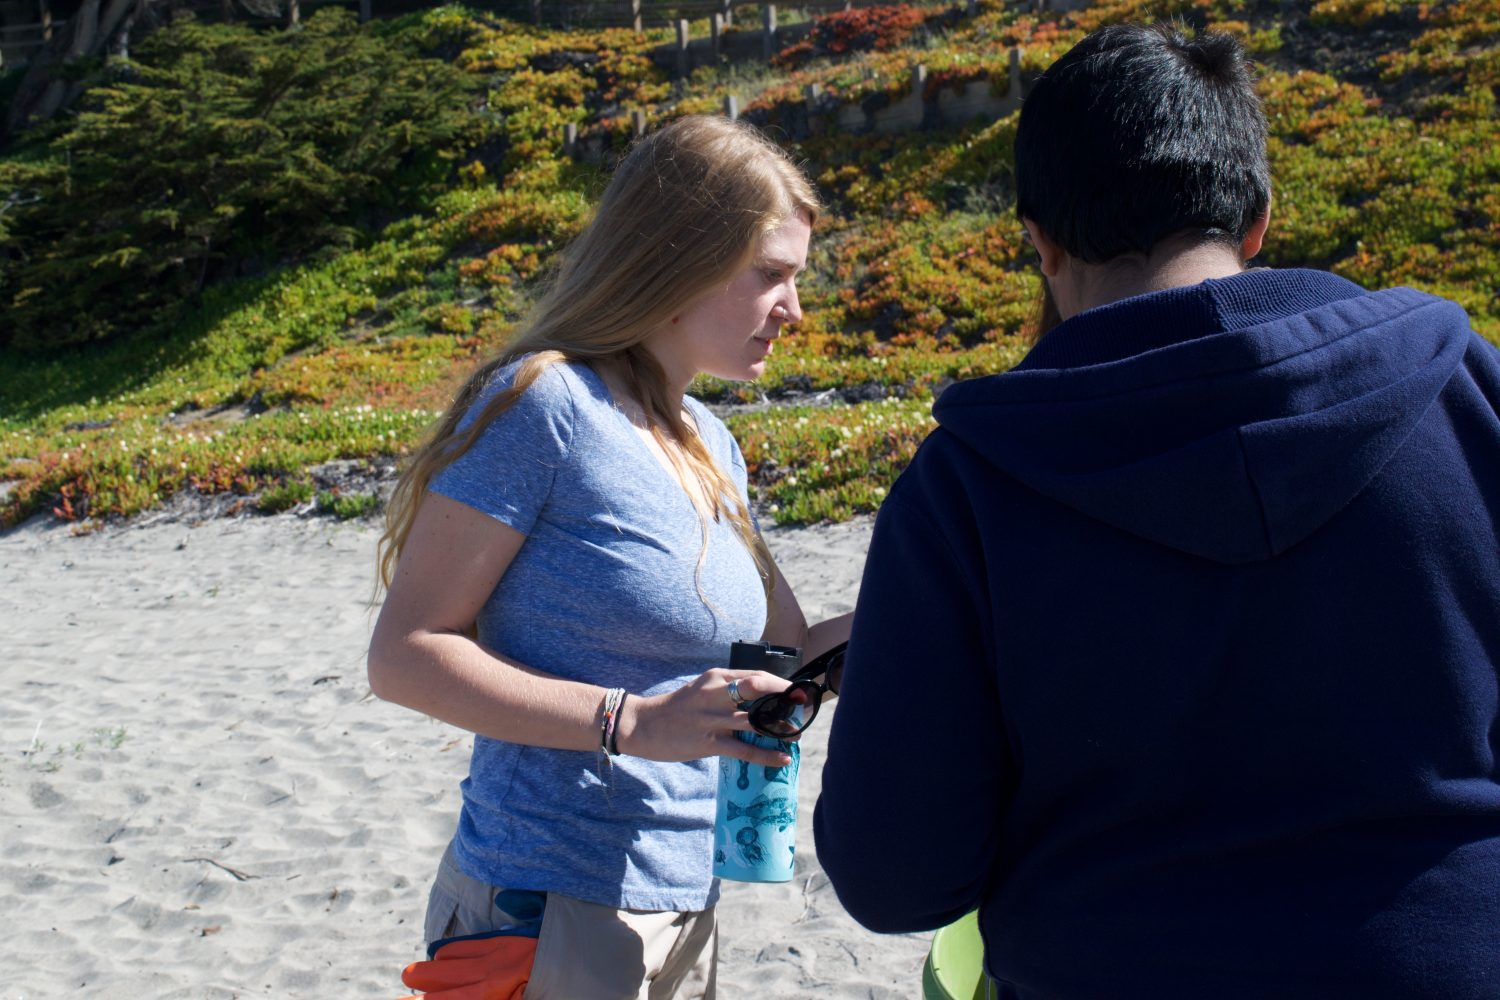 A young blond woman looks at a document in a young boys hands. There is sand and a big hill covered in ice plant behind them.